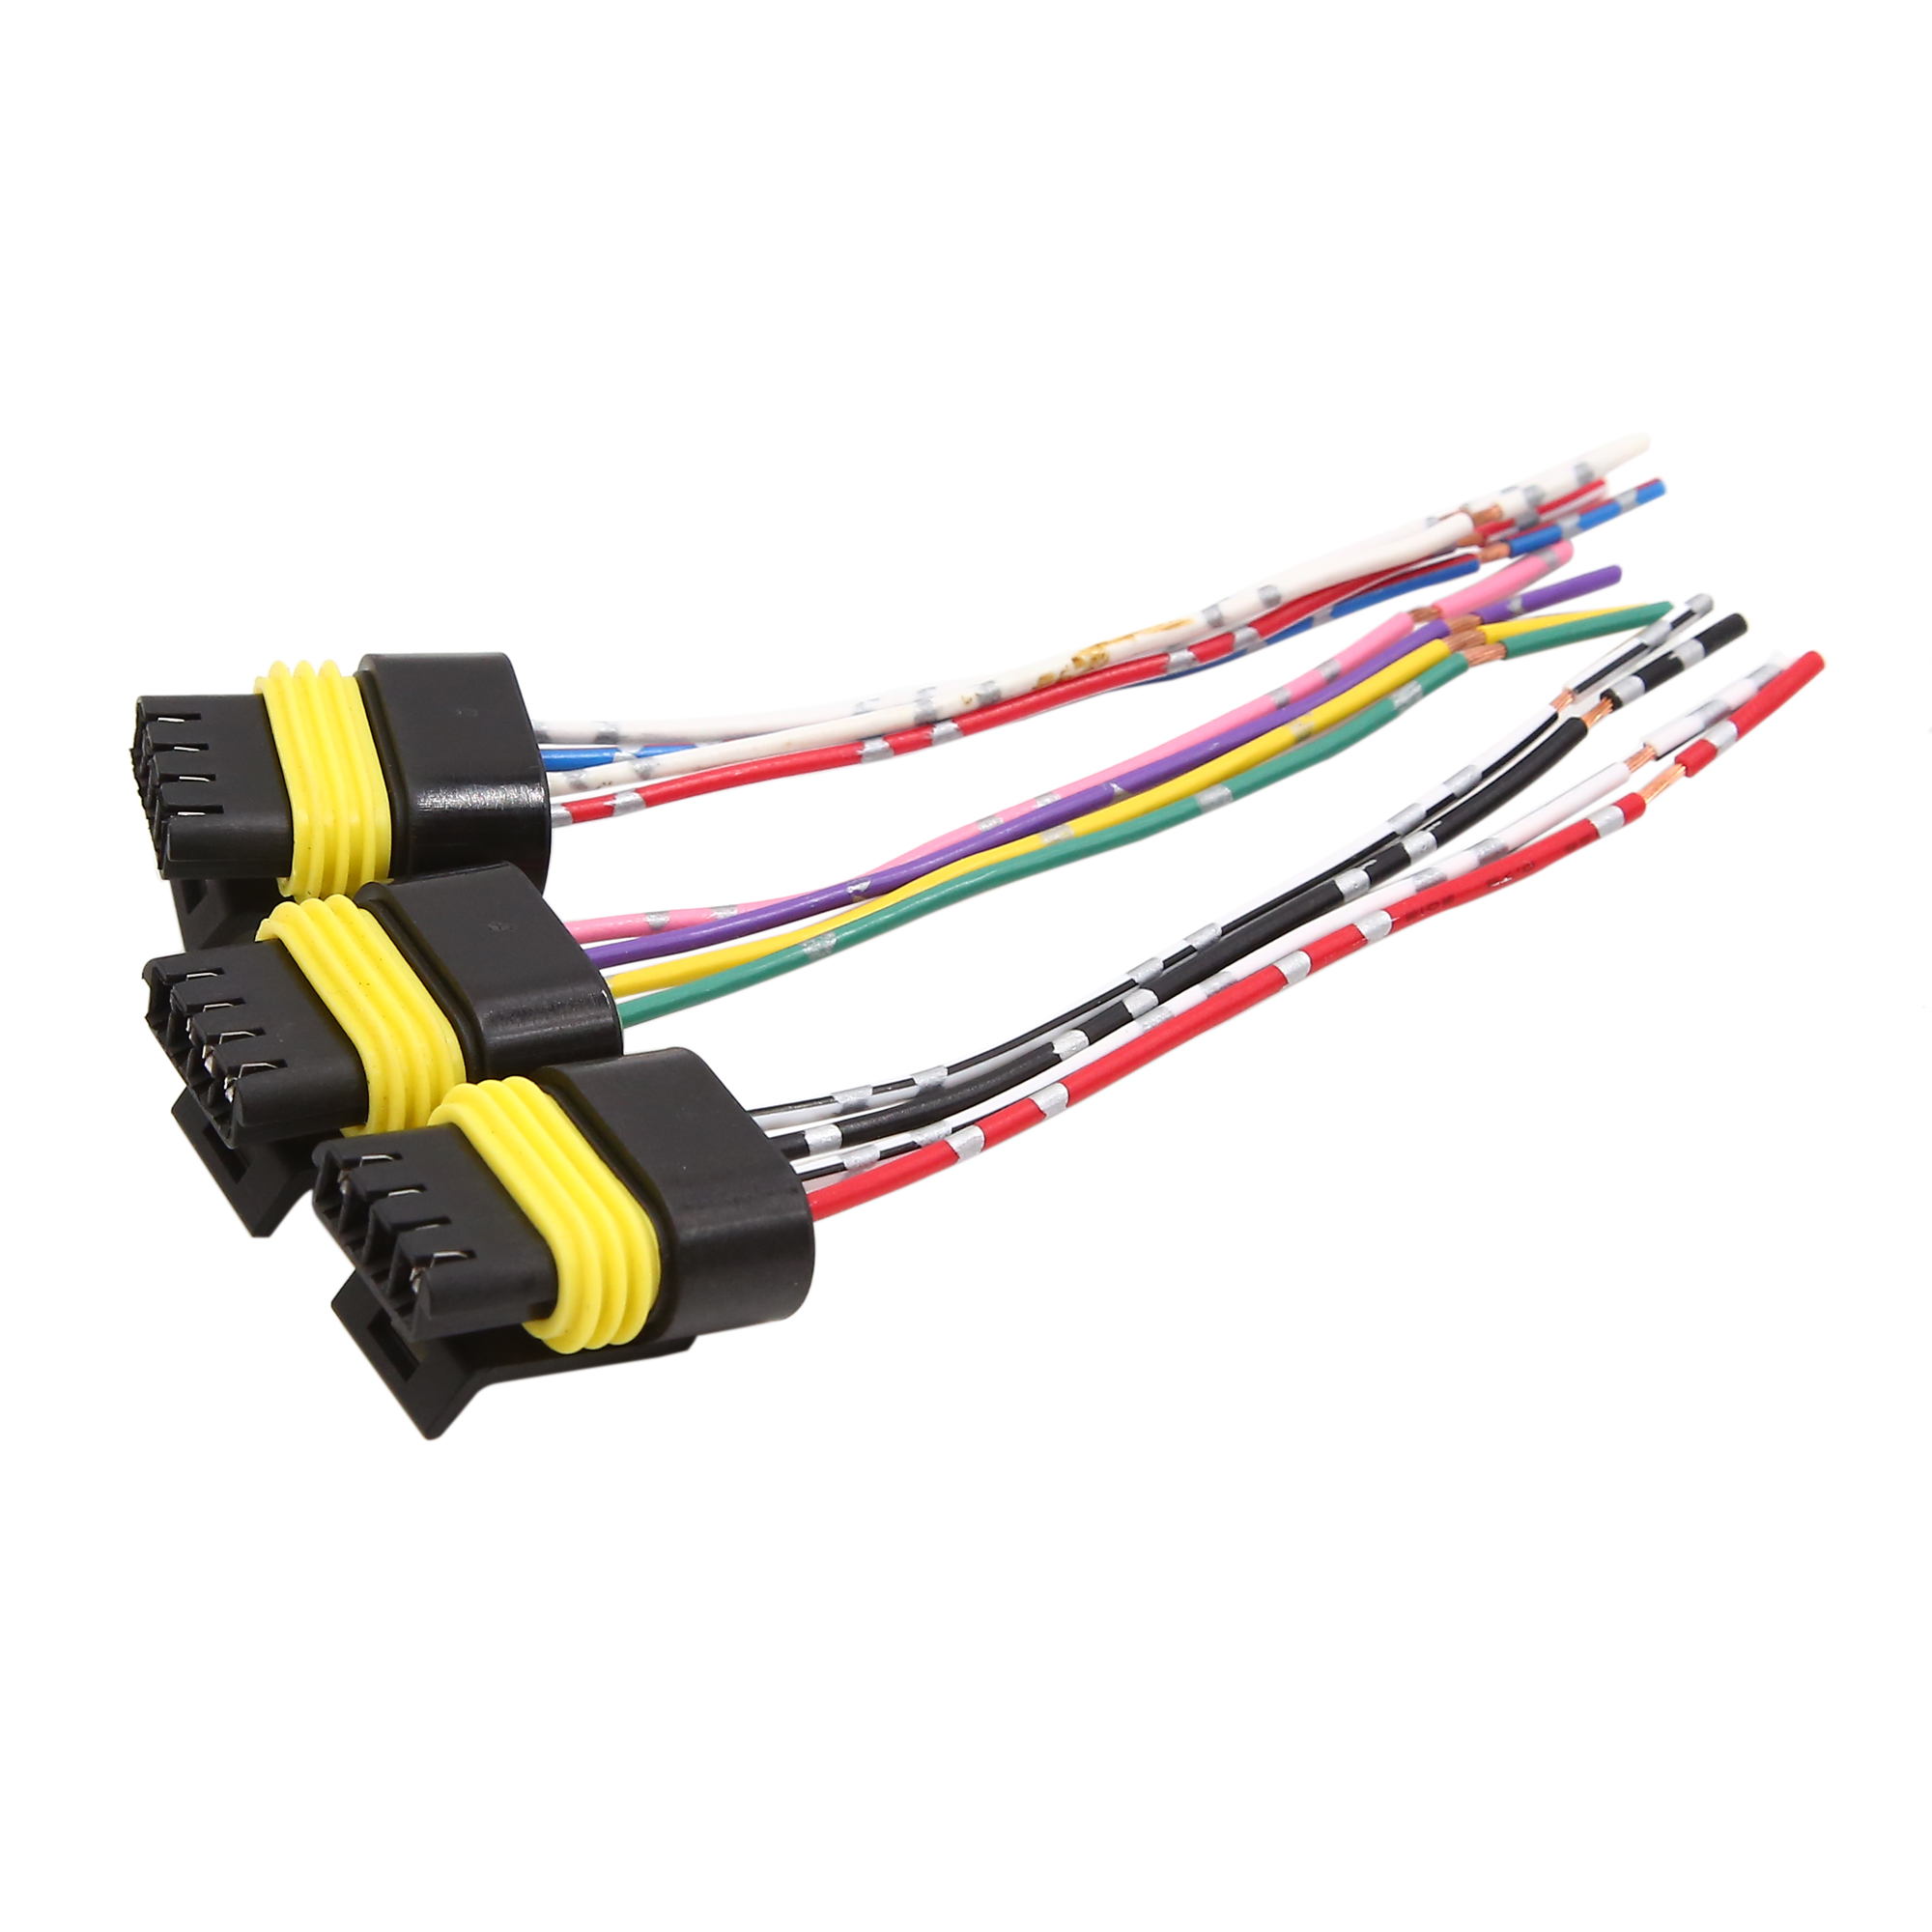 hight resolution of 3 pcs 4 wires dc 12v plastic motor wiring harness connector for car vehicle walmart com